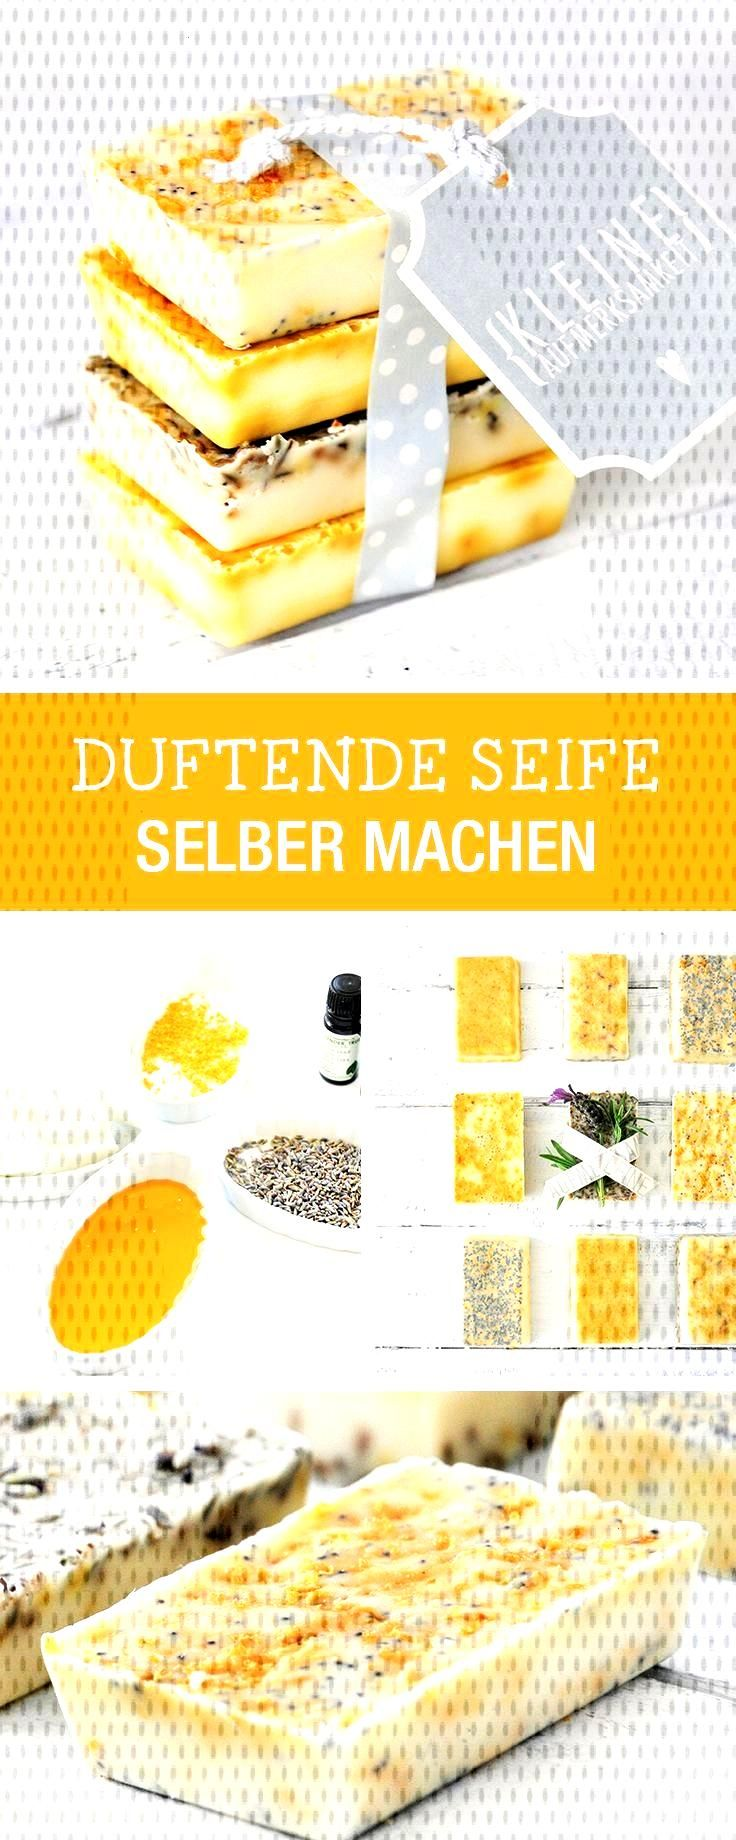 DIY Instructions: Making Scented Soap, Small Gift From Lemon, Lavender ... -  DIY instructions: mak